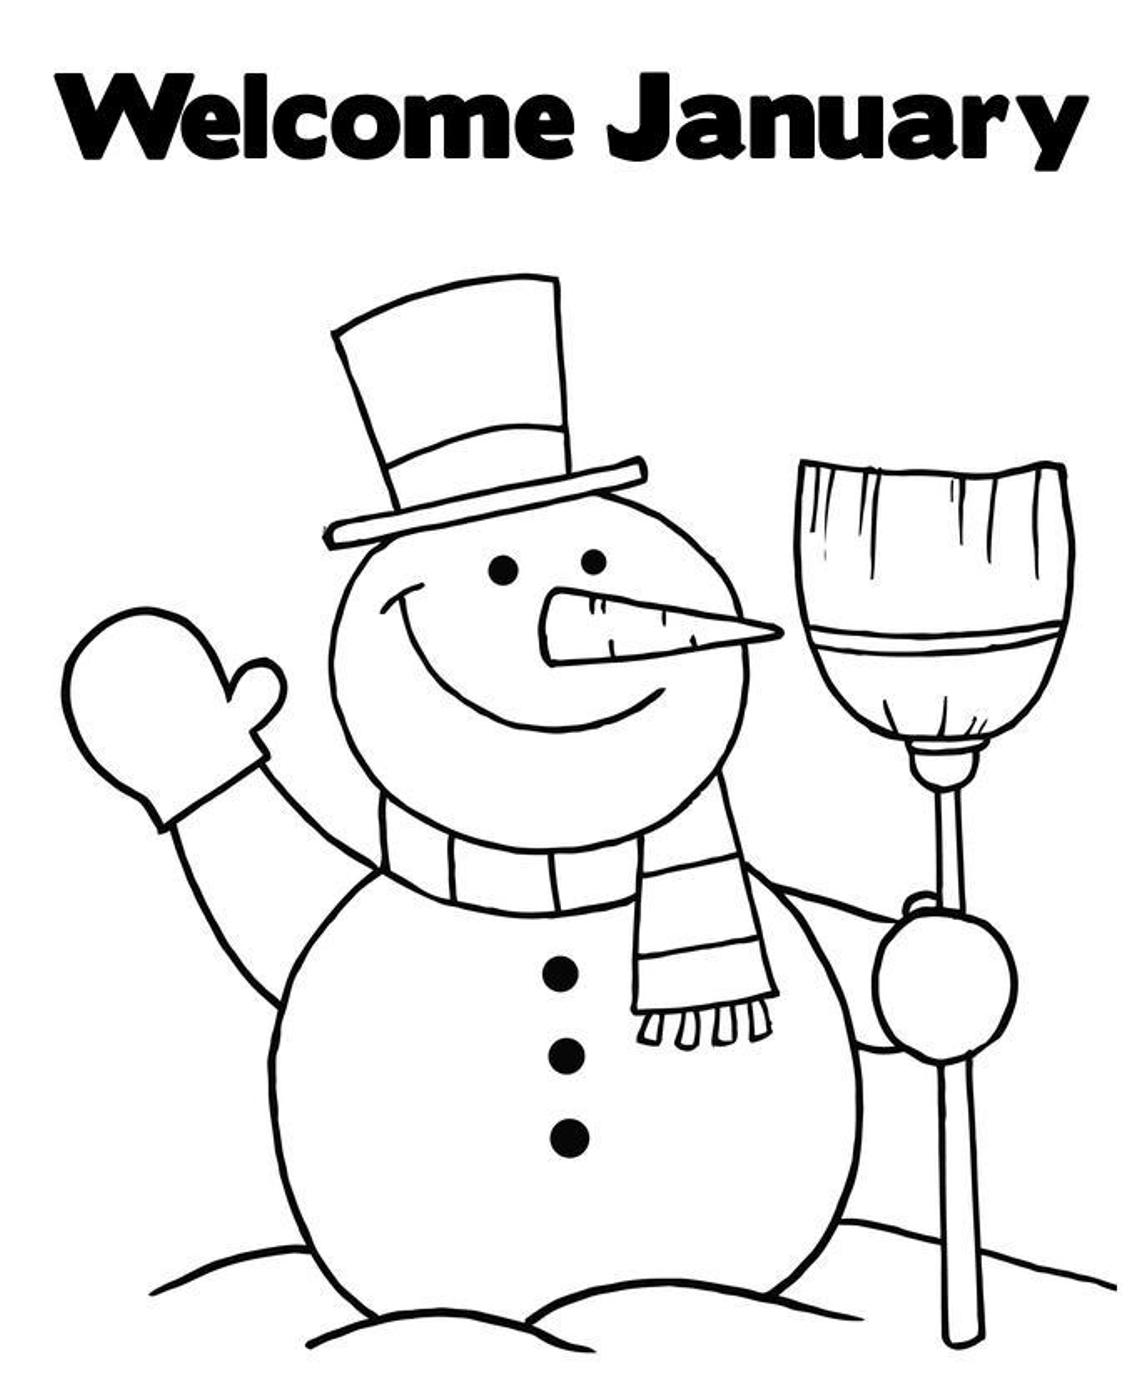 january coloring pages january coloring pages to download and print for free coloring january pages 1 1